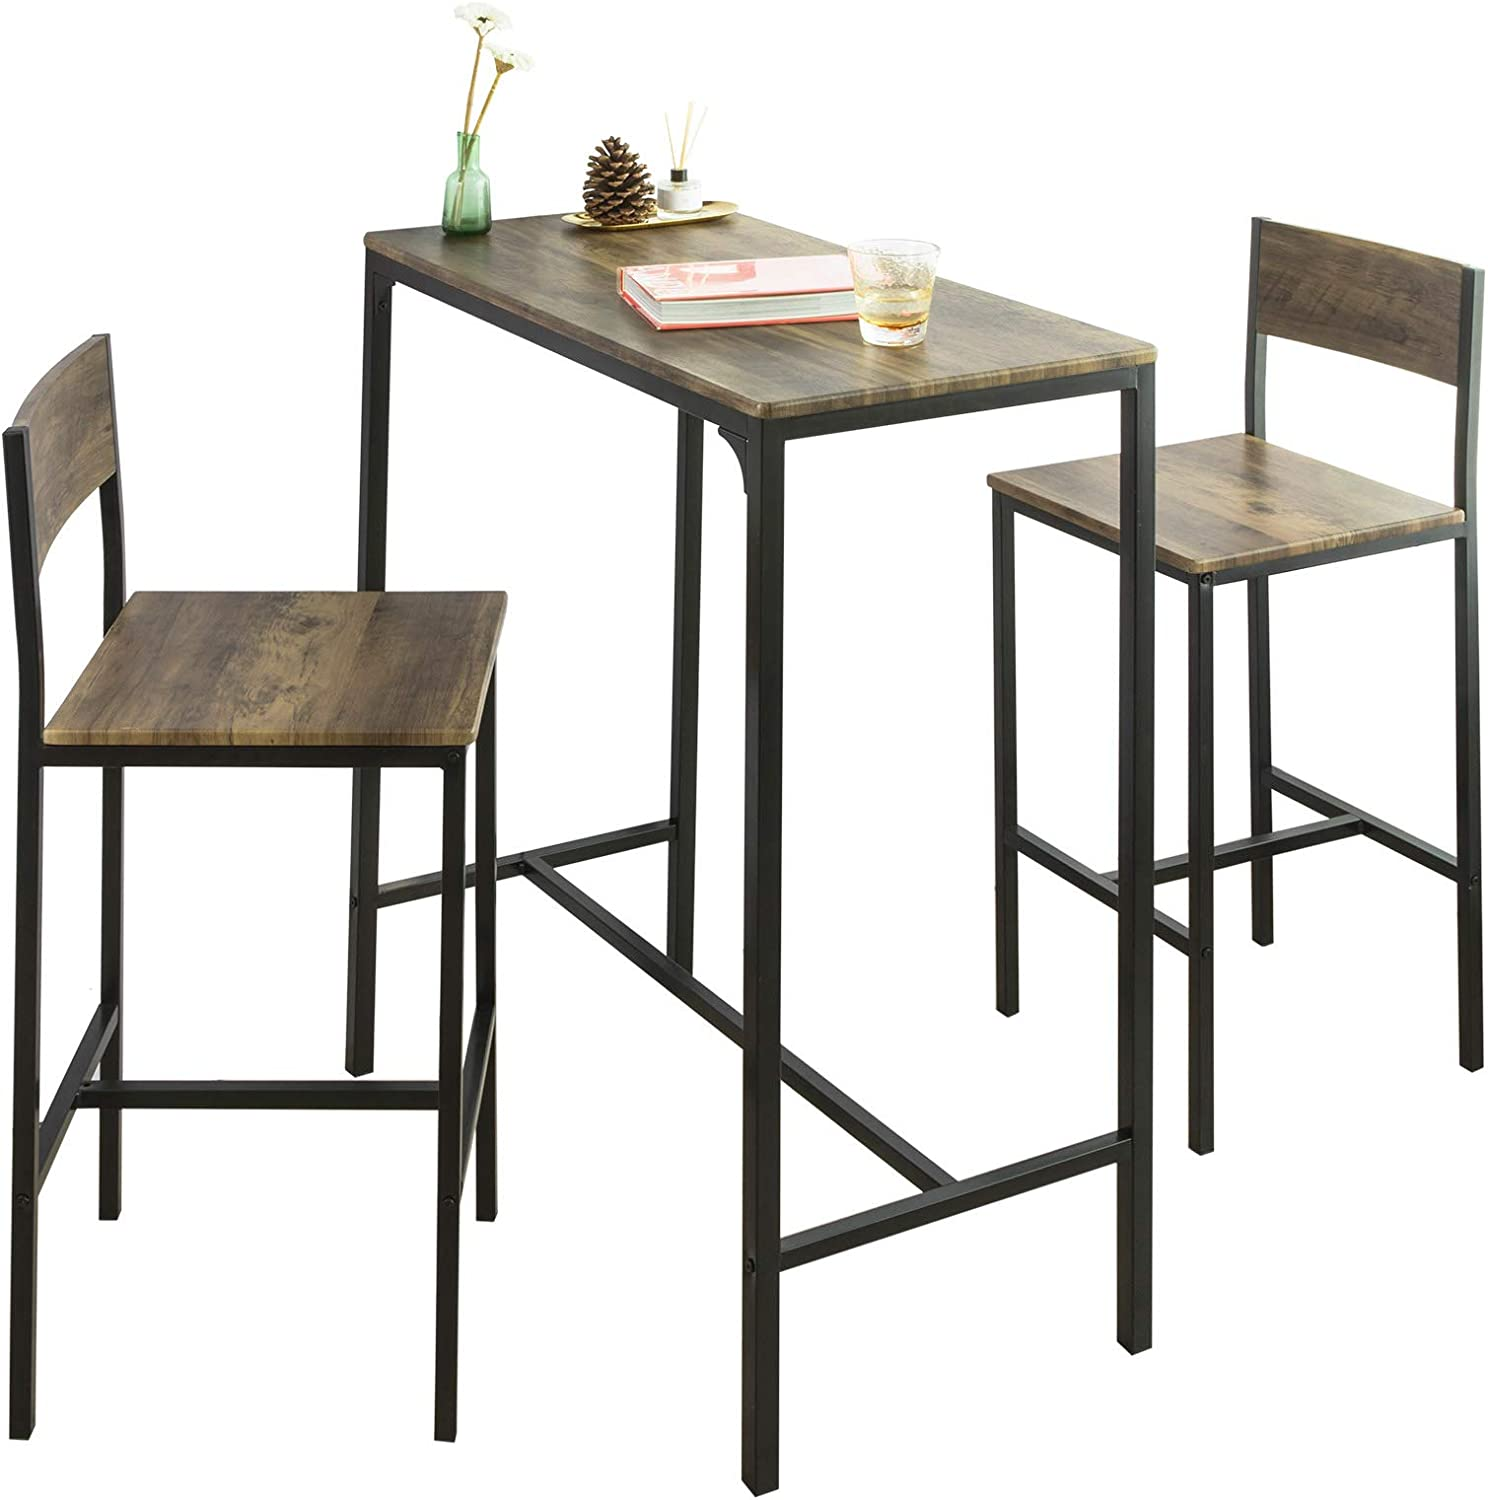 SoBuy OGT9 XL Bar Table Set 9 Piece Dining Table Bistro Table Balcony  Furniture Bistro Furniture